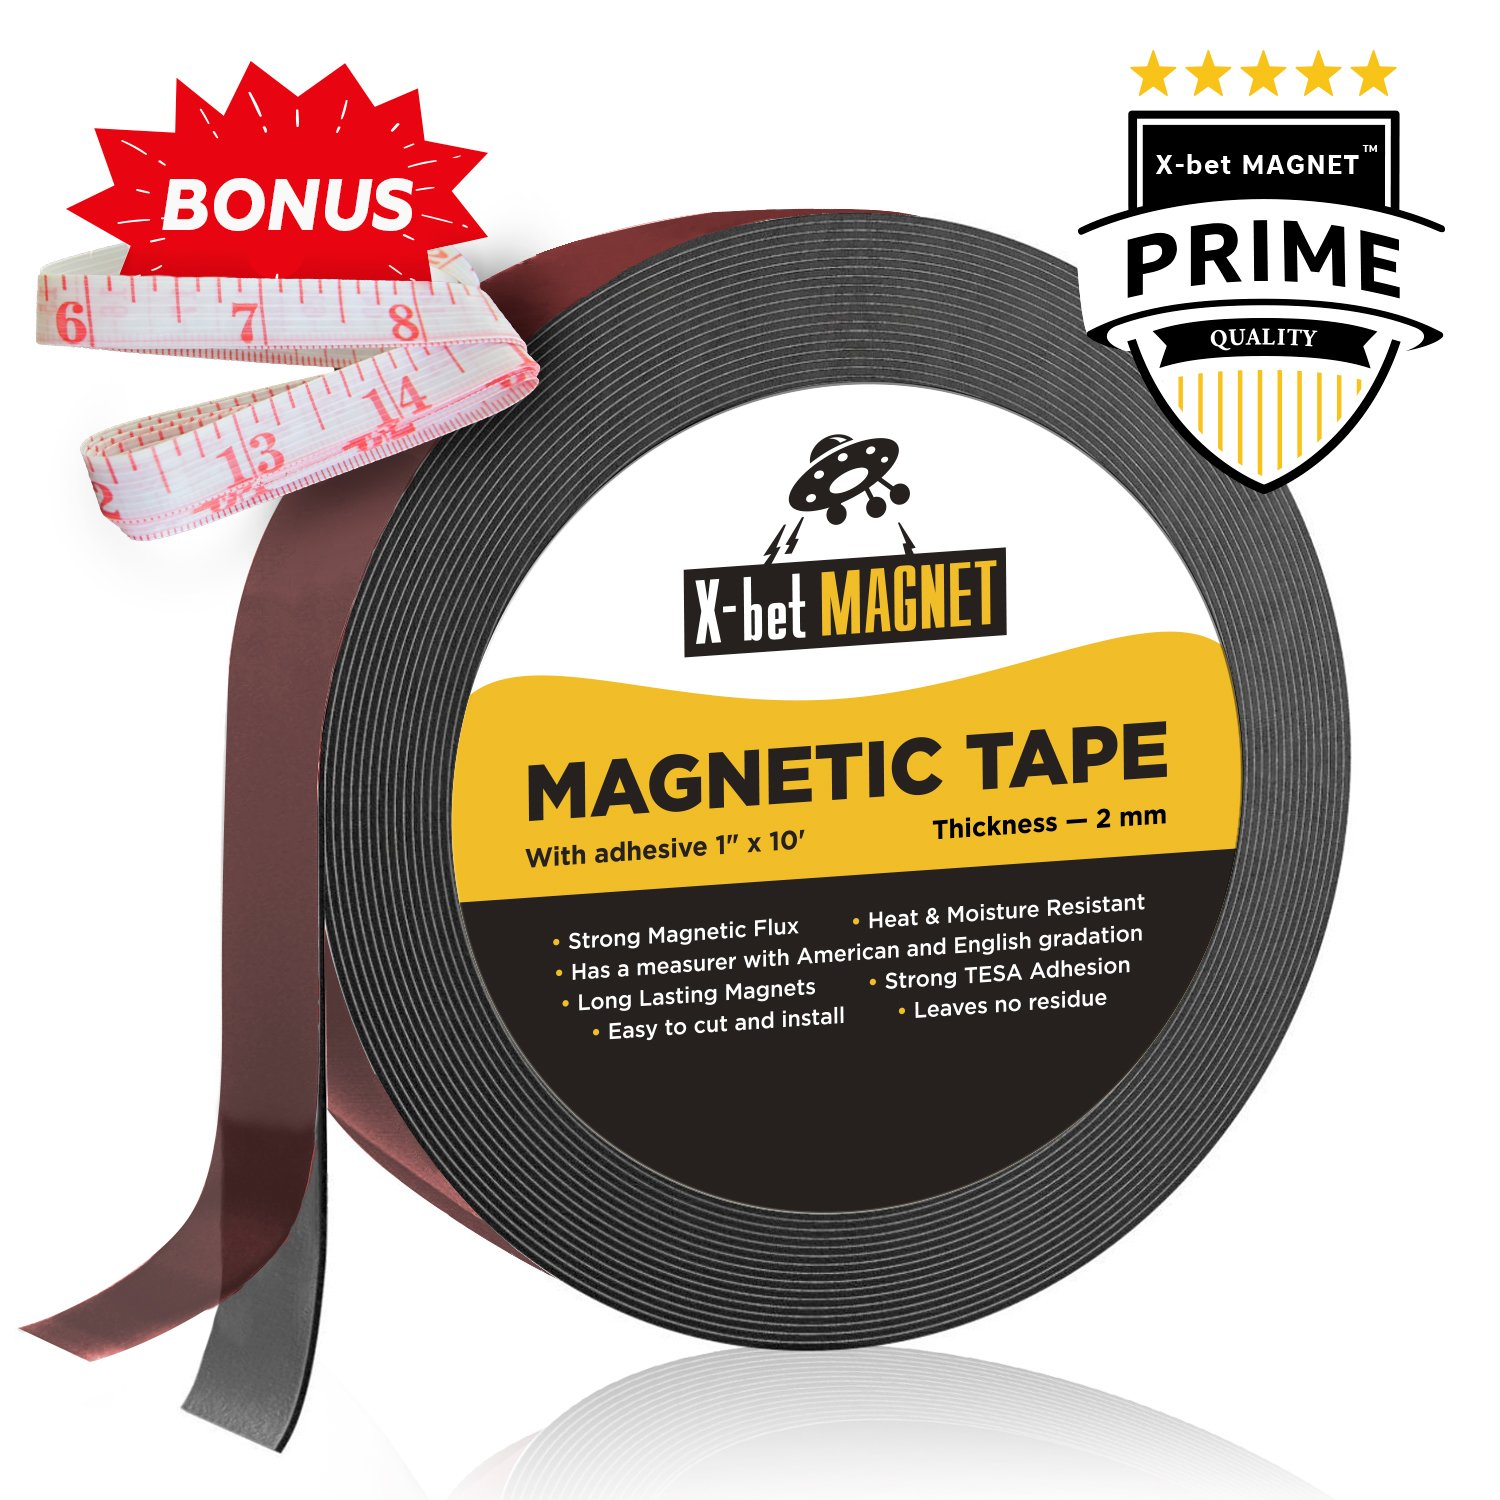 Flexible Magnetic Tape - 1 Inch x 10 Feet Magnetic Strip with Strong Self Adhesive - Ideal Magnetic Roll for Craft and DIY Projects - Sticky Magnets for Fridge and Dry Erase Board X-bet